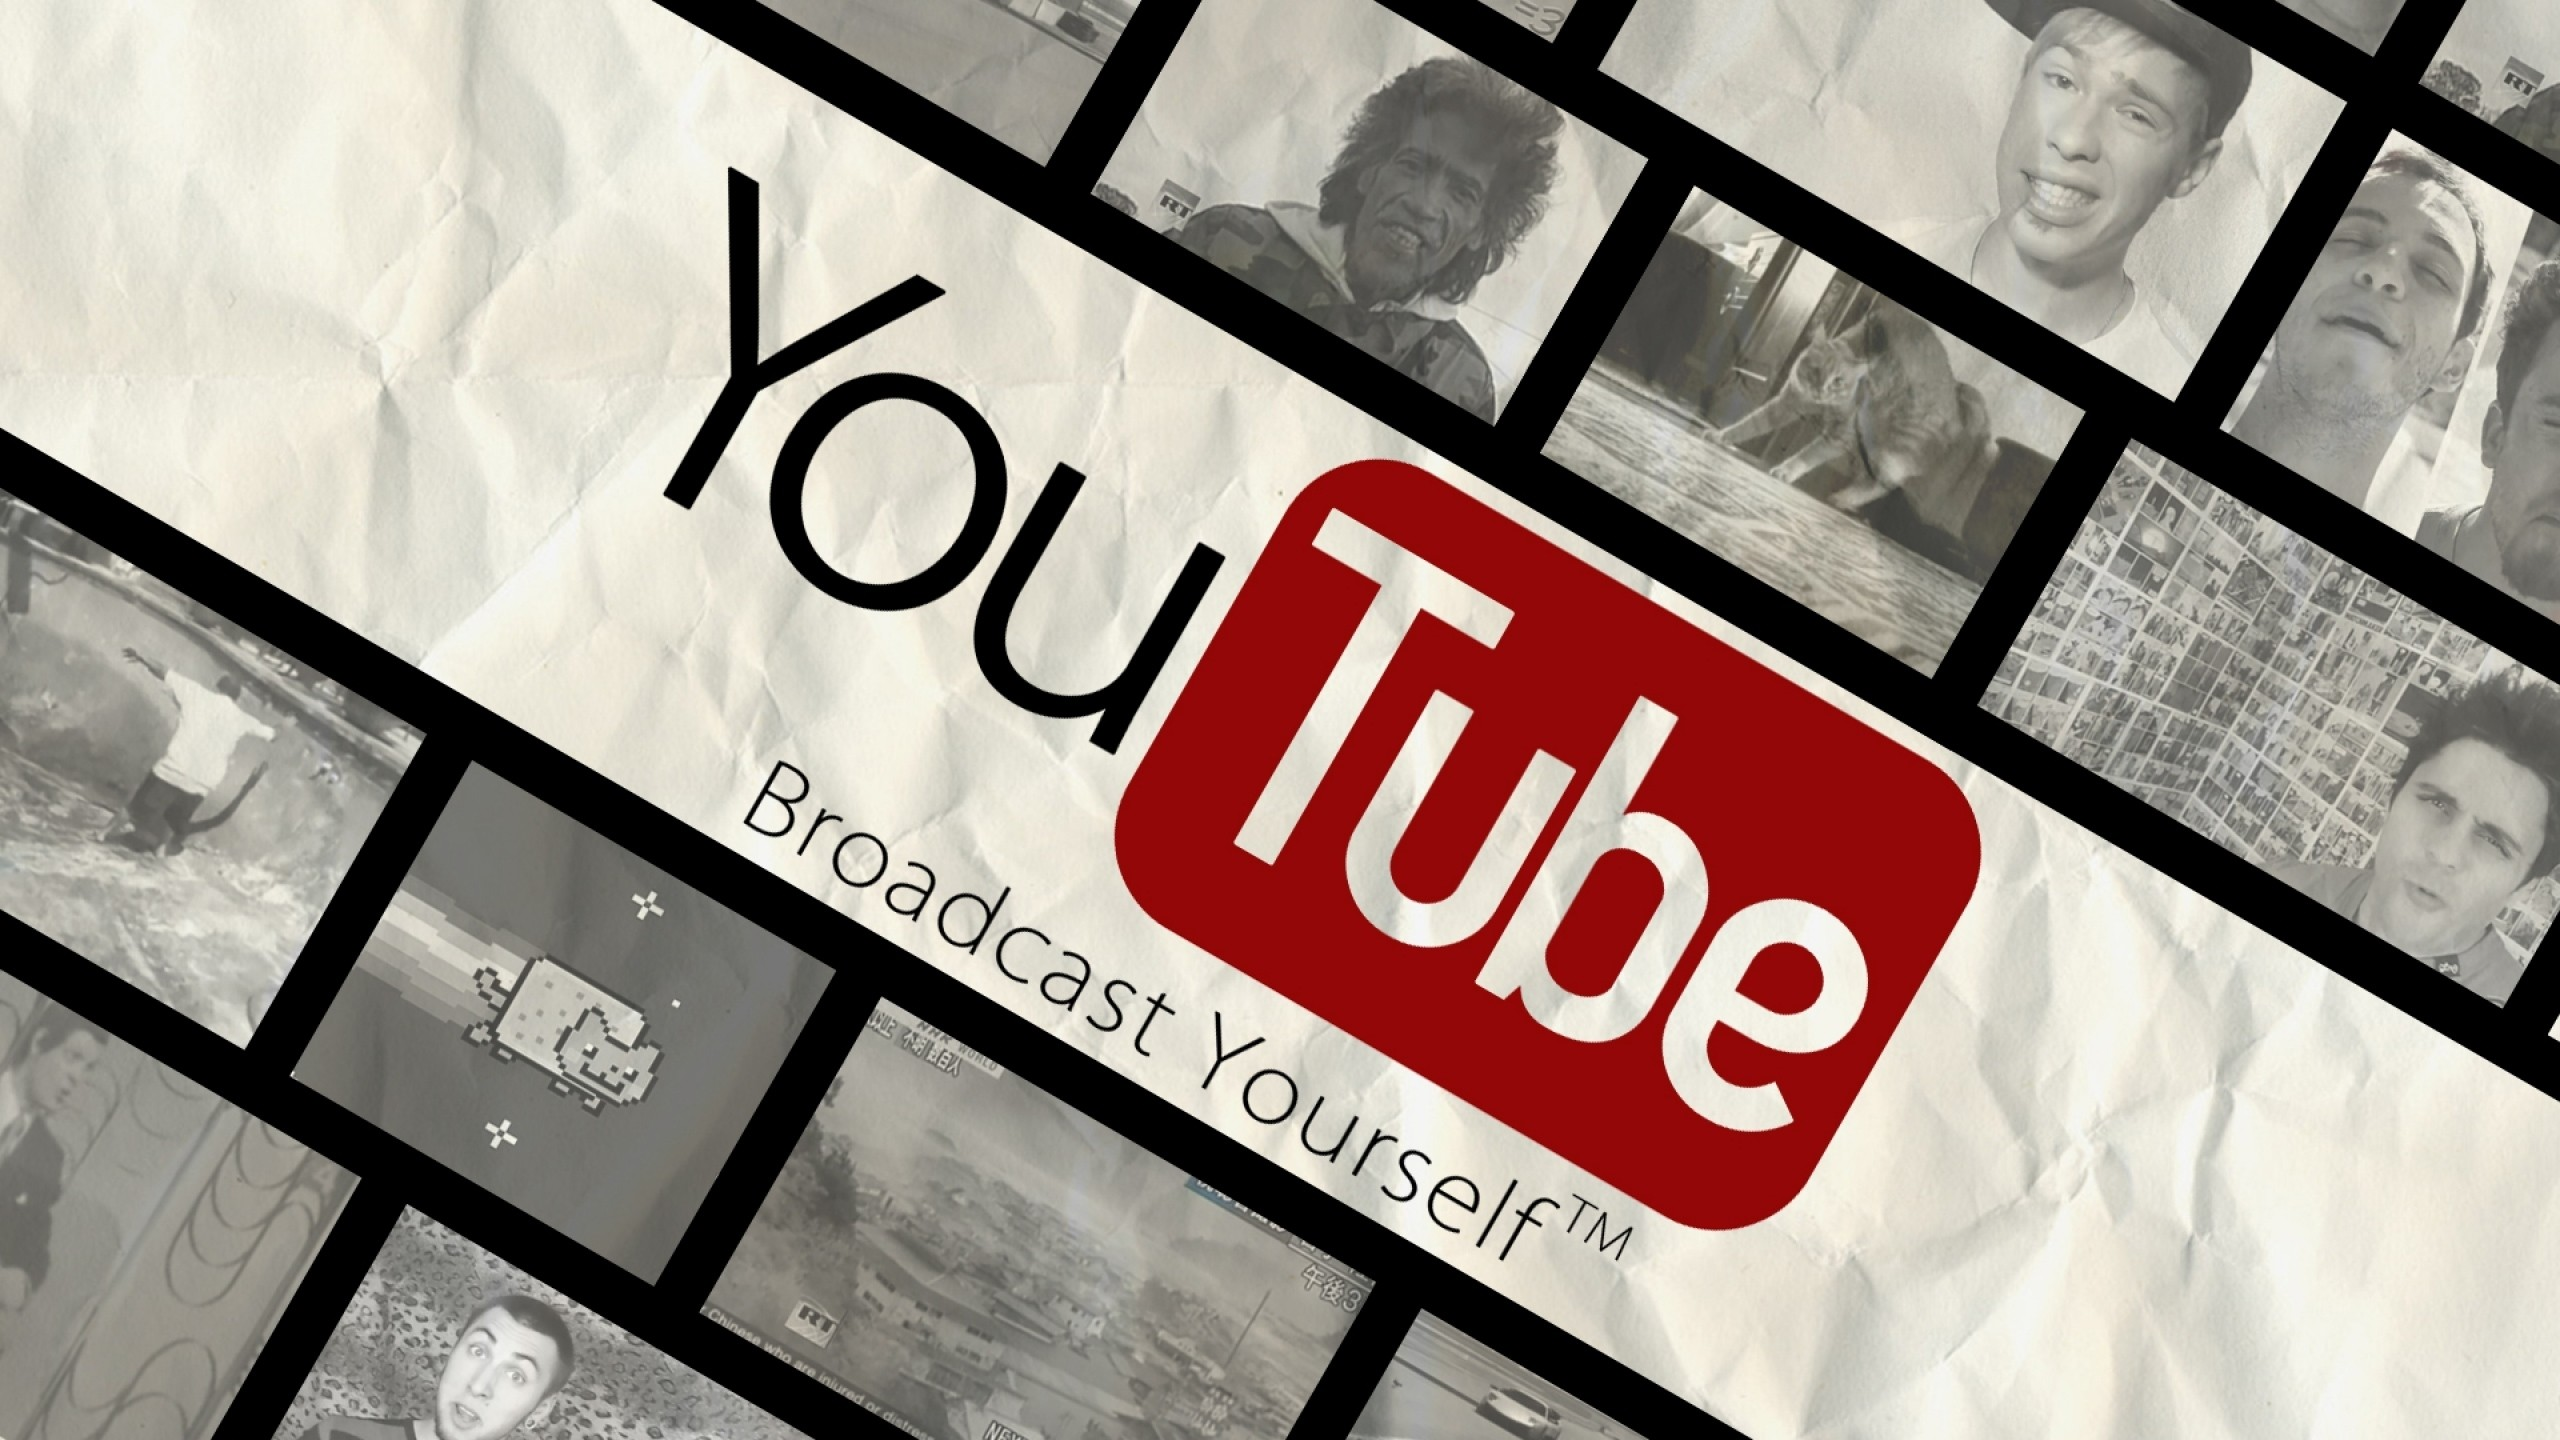 Youtube 2560 X 1440 Wallpaper 82 Images